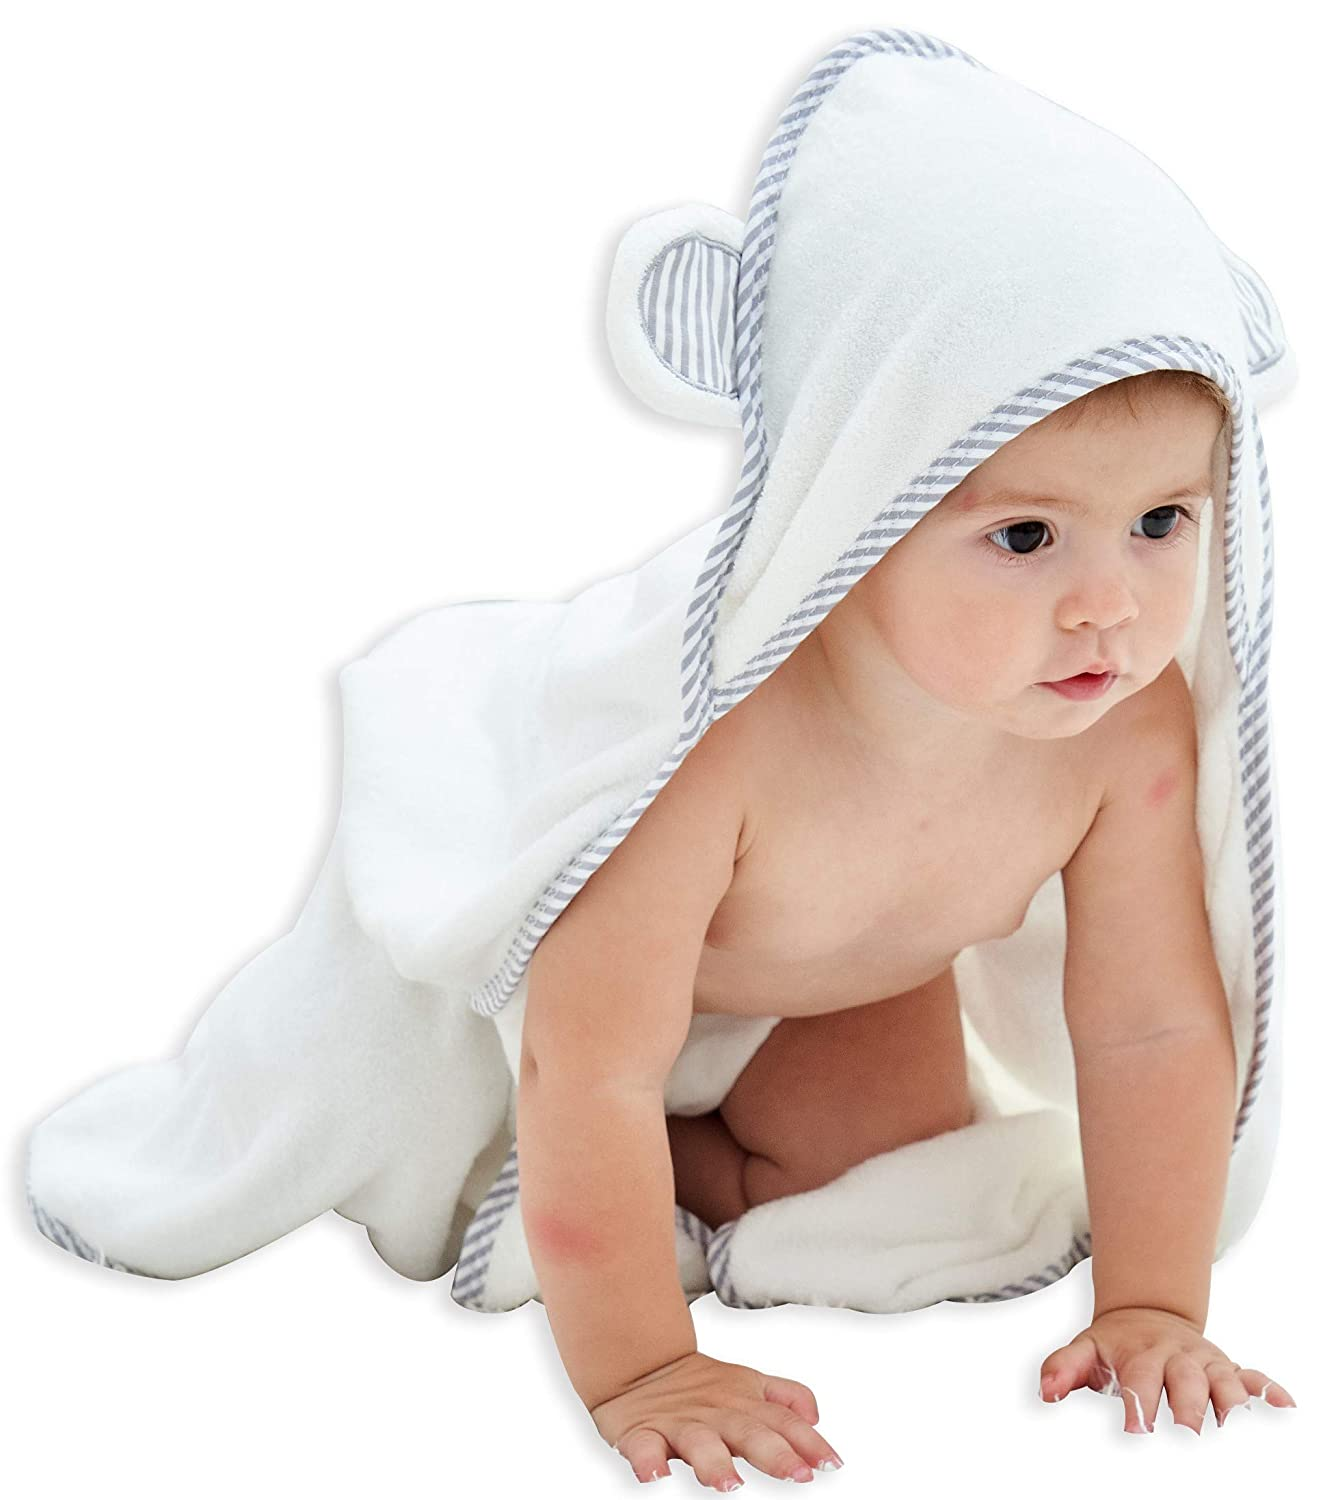 HIPHOP PANDA Bamboo Hooded Baby Towel - Softest Hooded Bath Towel with Bear Ears for Babie, Toddler,Infant - Ultra Absorbent and Hypoallergenic, Natural Baby Towel Perfect (30 × 30'', White)